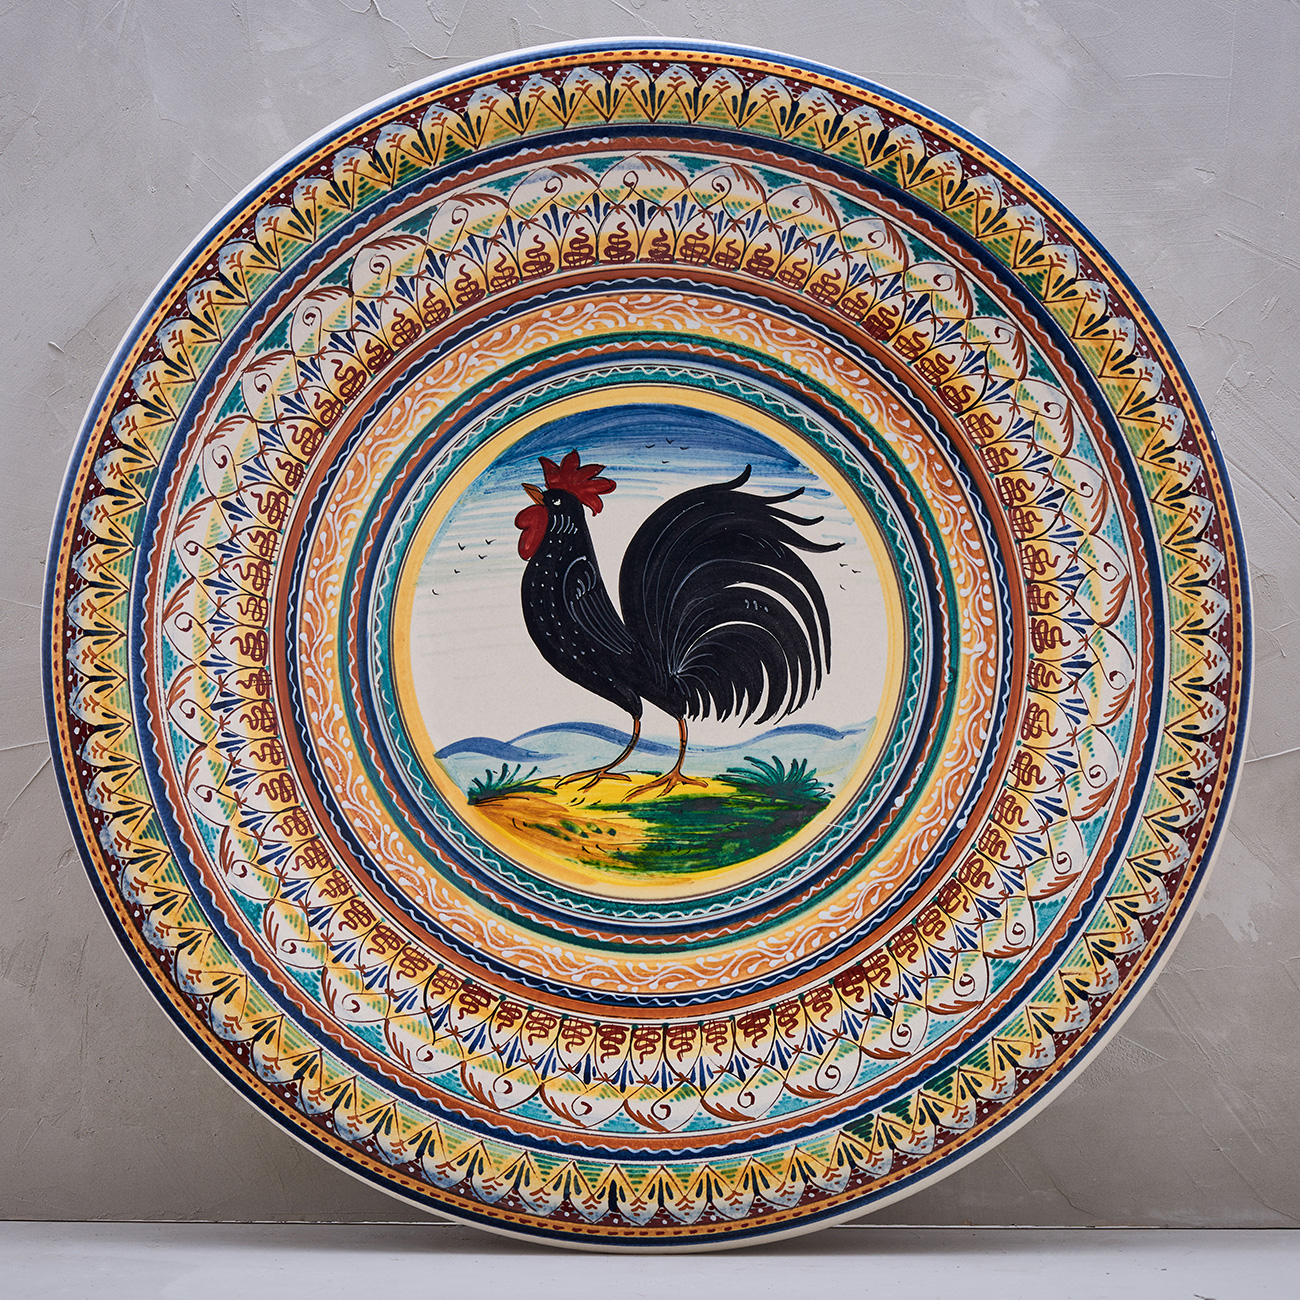 Black Rooster Plate with frame - 52 cm